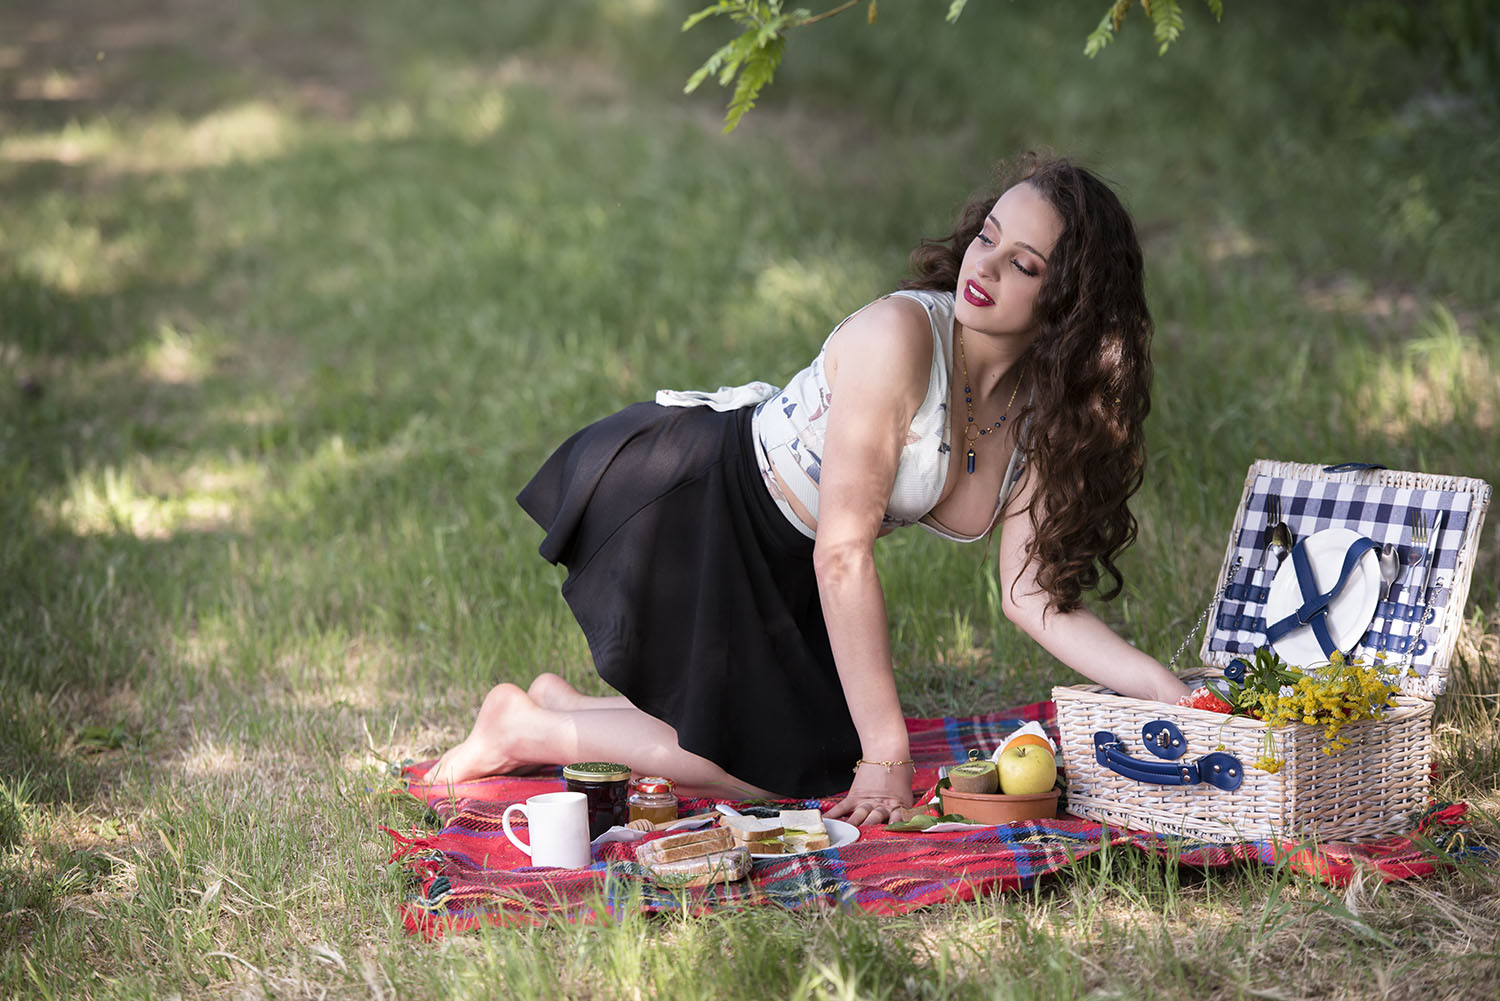 young beautiful woman having a picnic, wearing a skirt and a sexy deep neckline blouse, preparing her meal